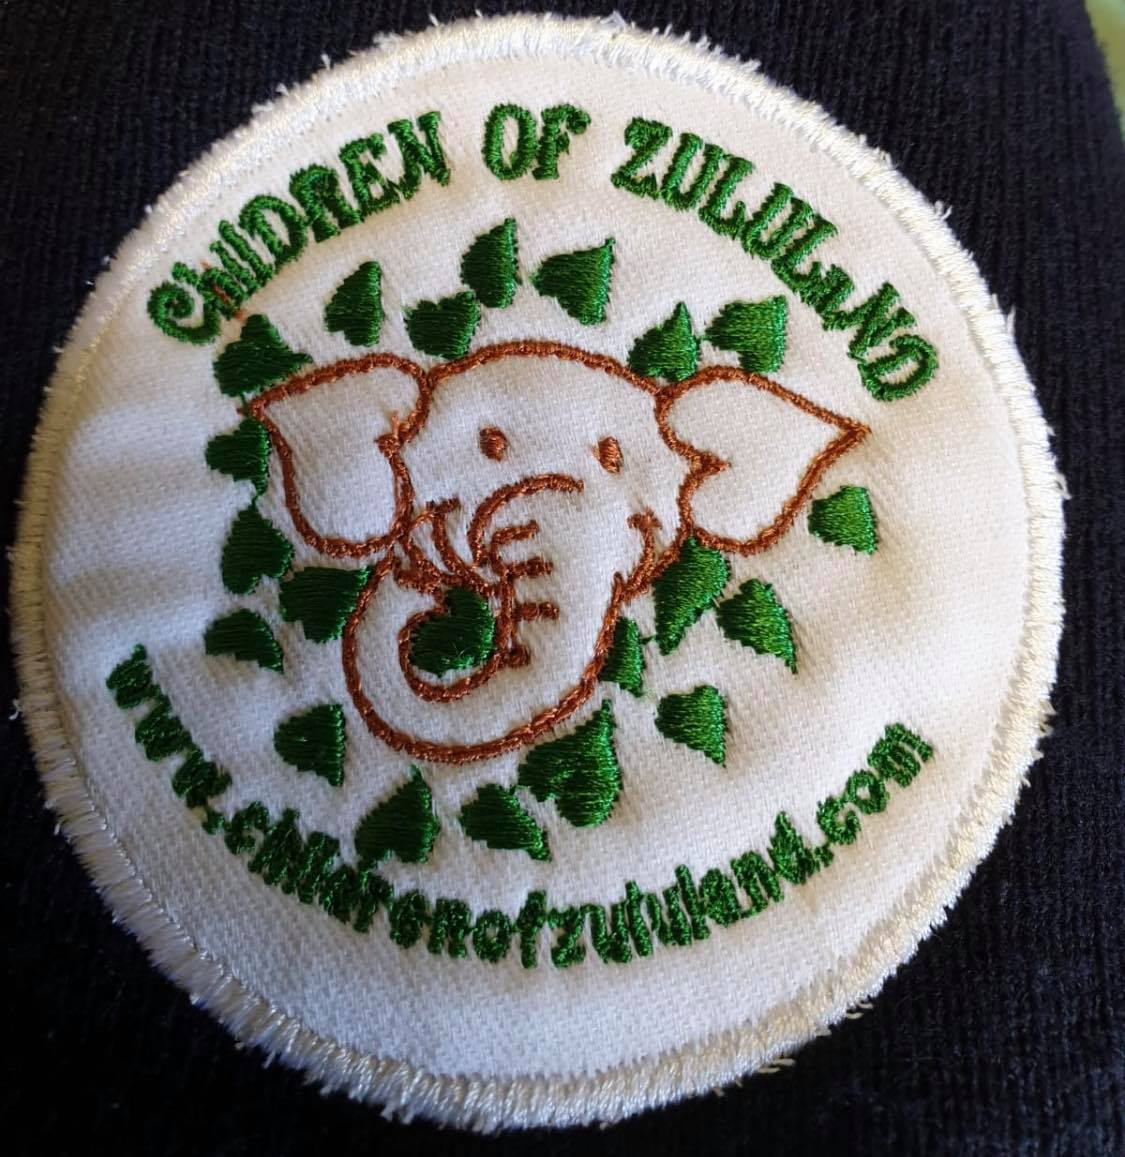 Logo used in South Africa to brand things from Children of Zululand there